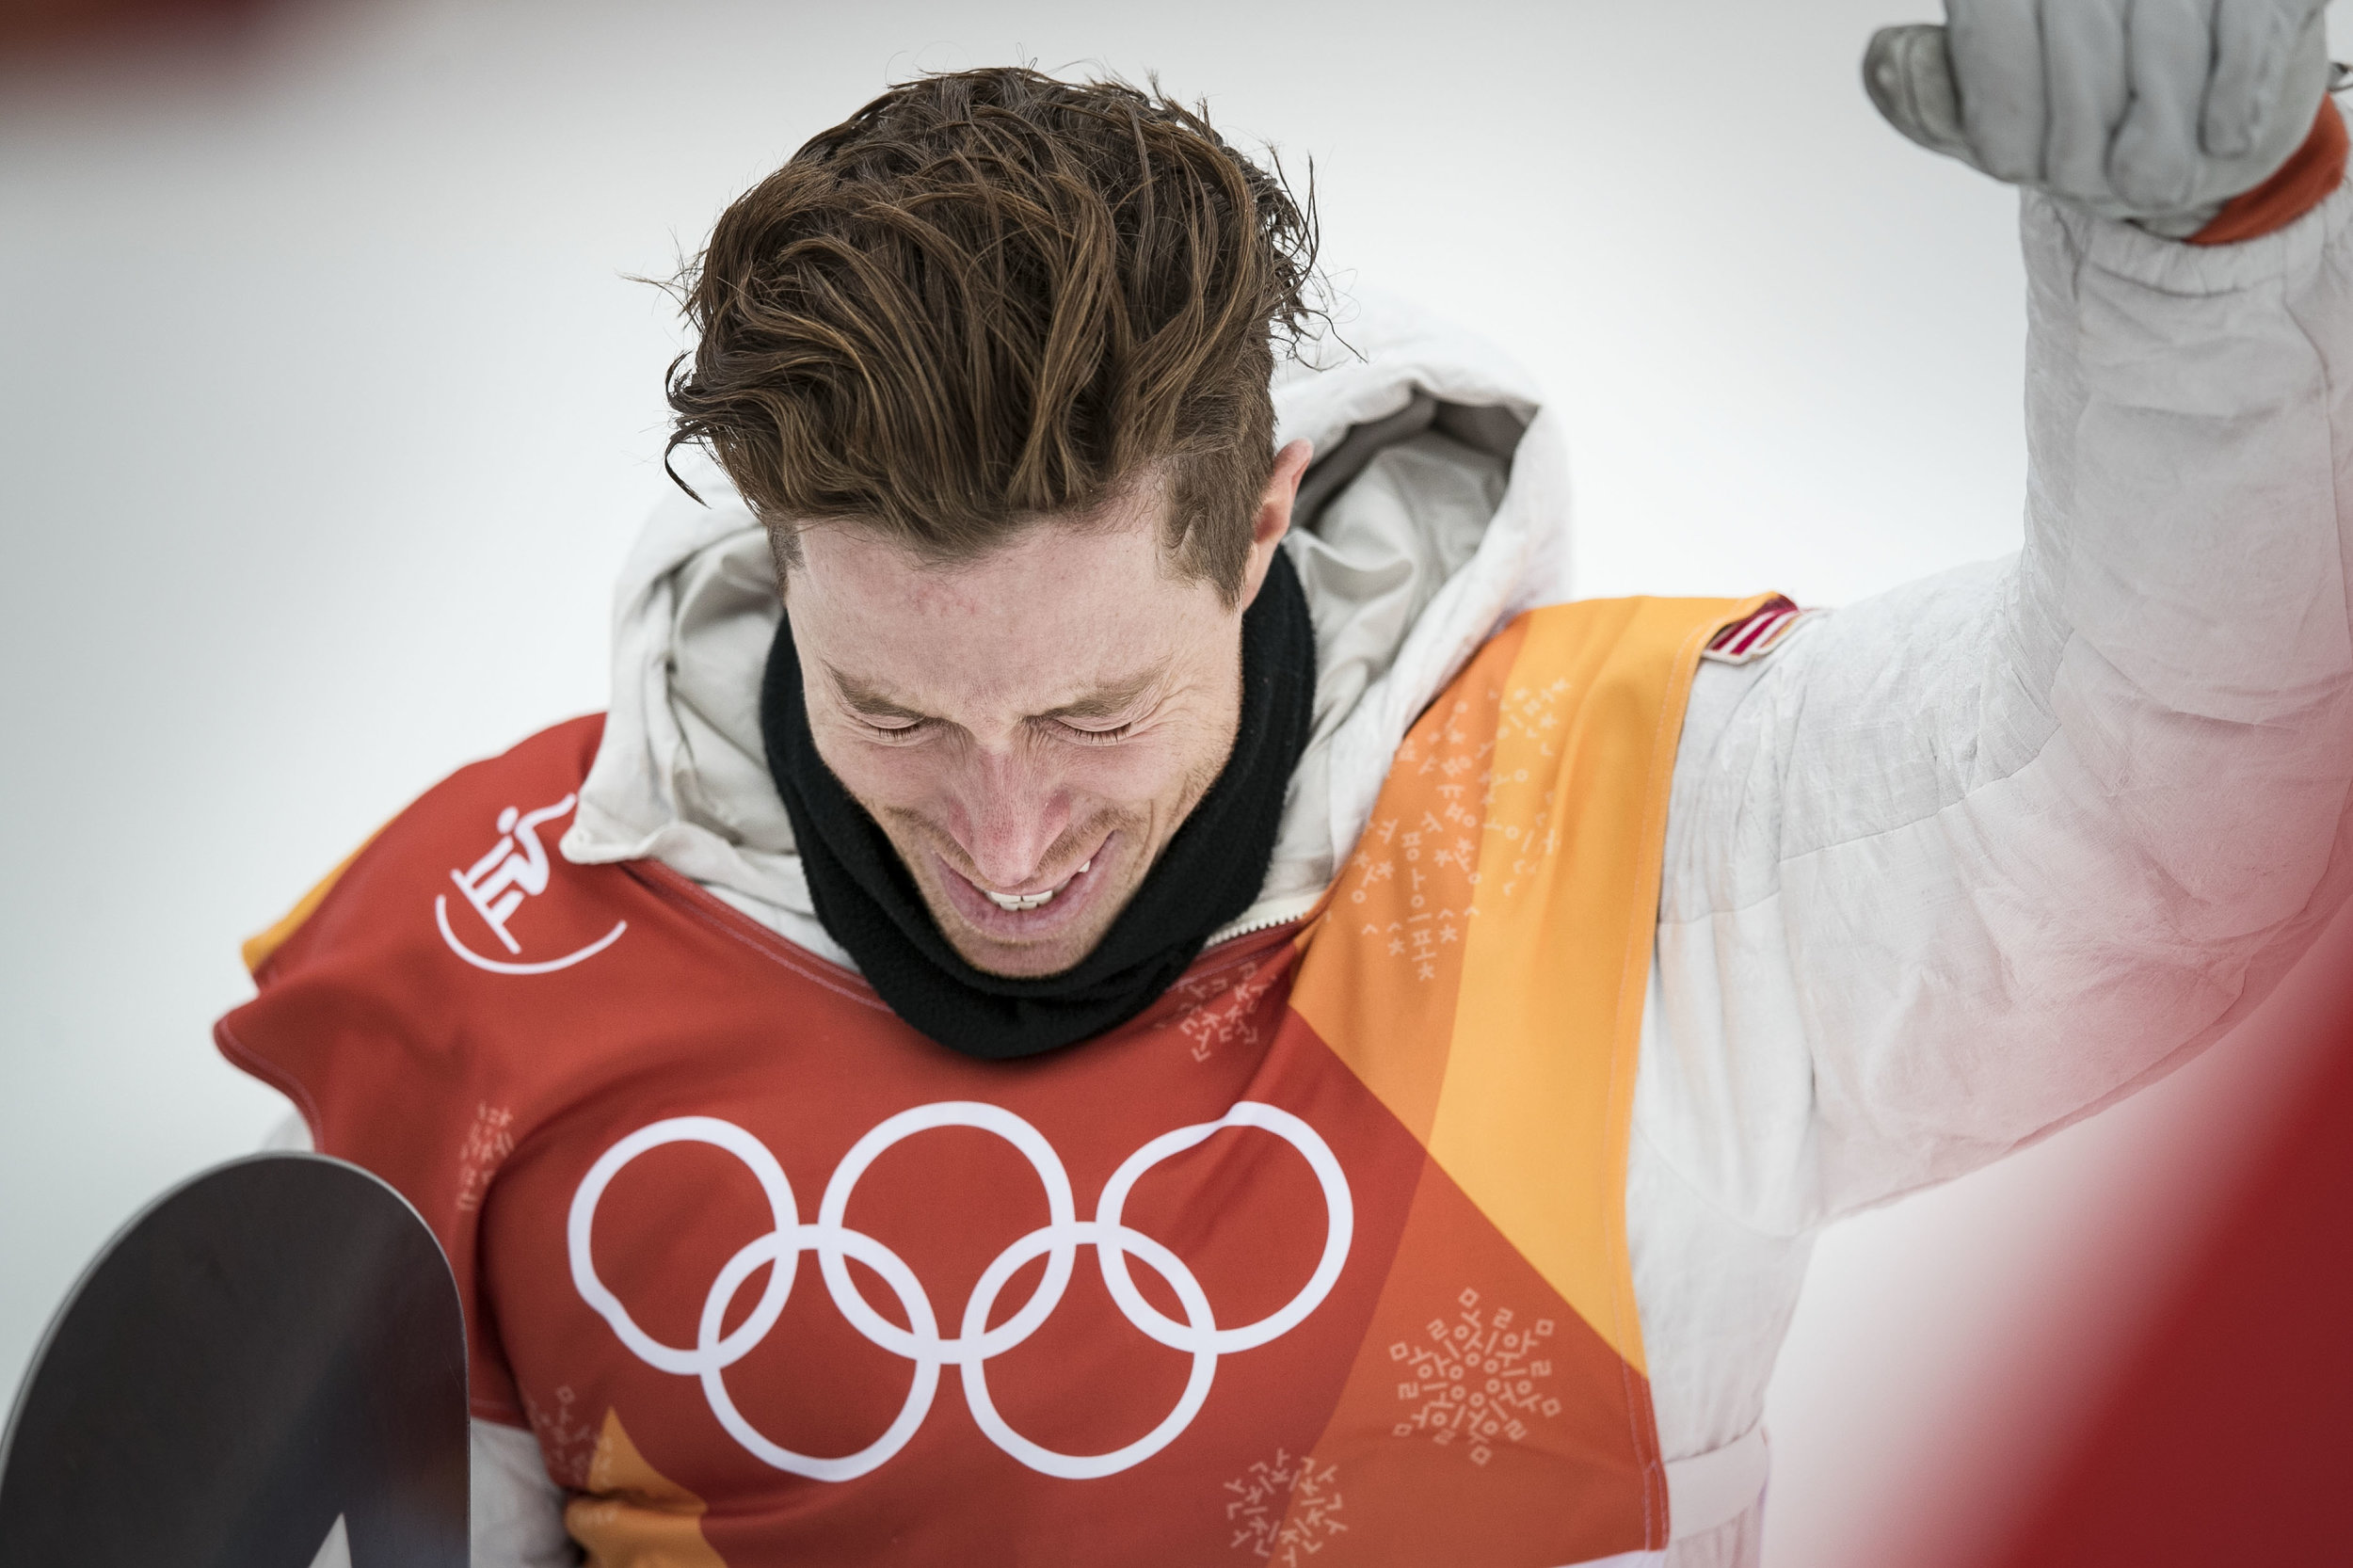 Halfpipe champion snowboarder Shaun White, cries tears of joy after seeing his score of 97.75 leading him to his third Olympic gold medal, Feb. 14 at Phoenix Snow Park. White broke into tears and hugged his friends and family before the venue celebration.